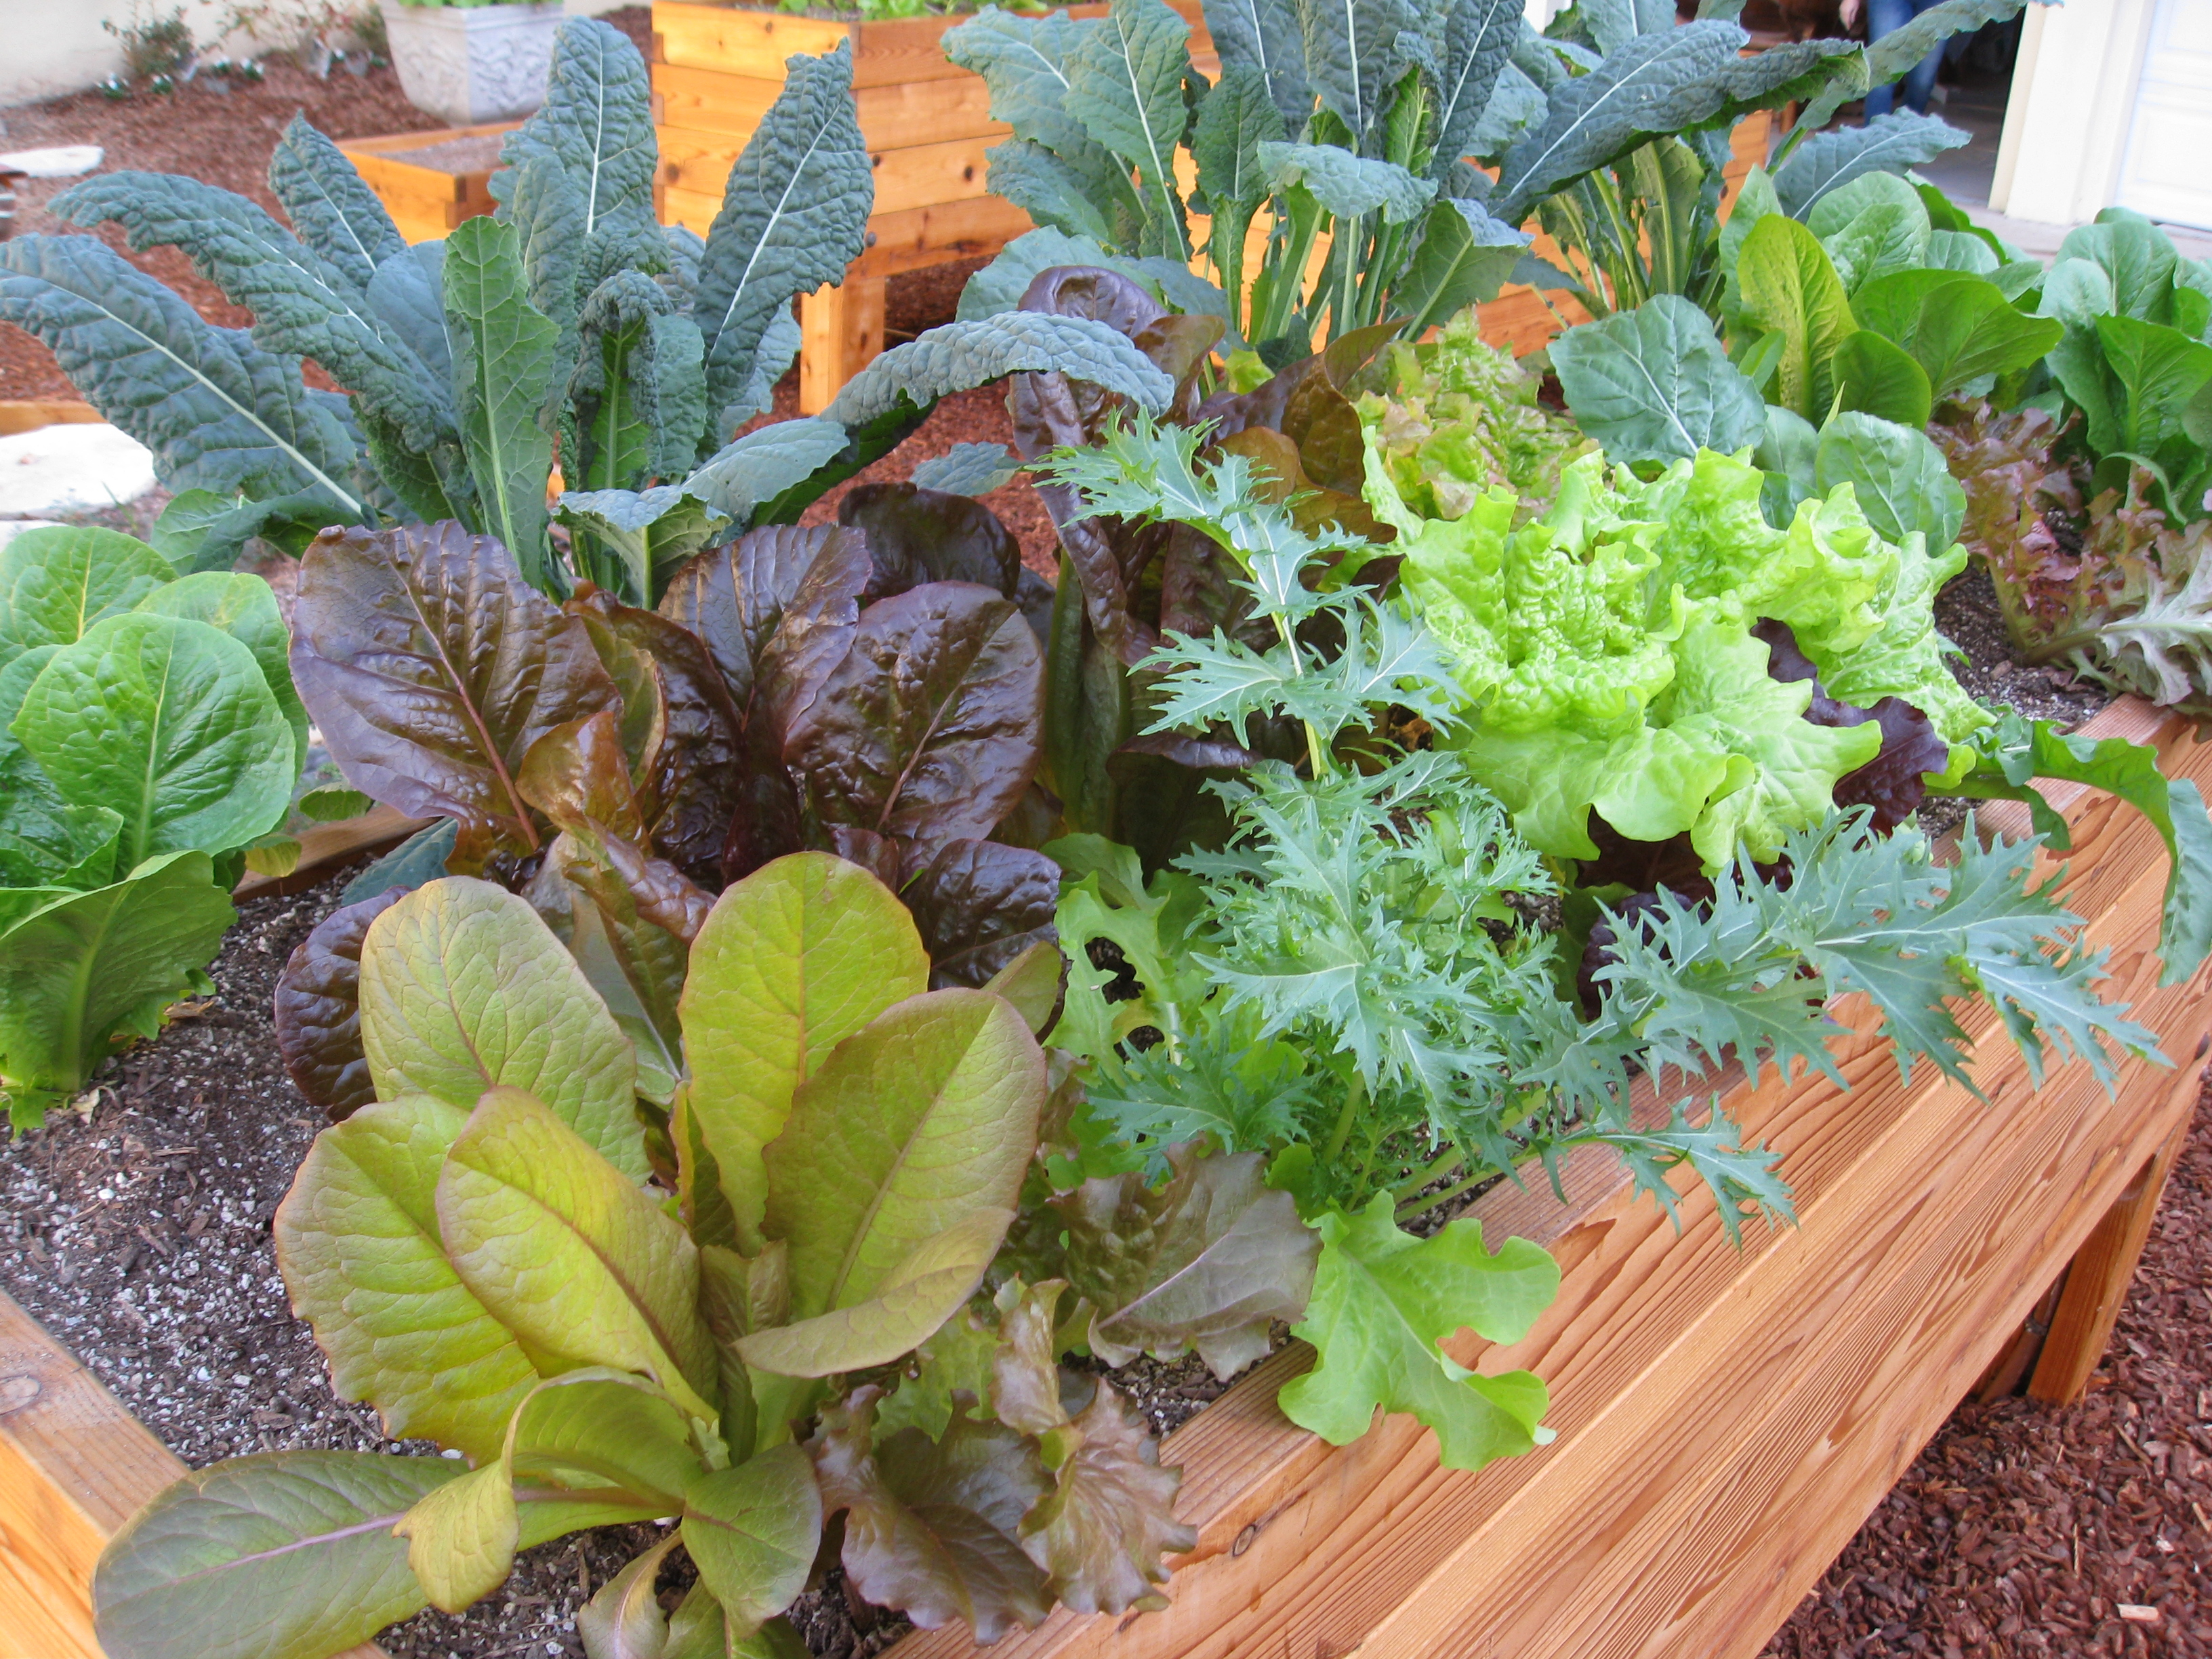 A mixture of lettuces and kale, planted from nursery transplants, allow residents to see the difference between starting from seed and buying from the nursery.